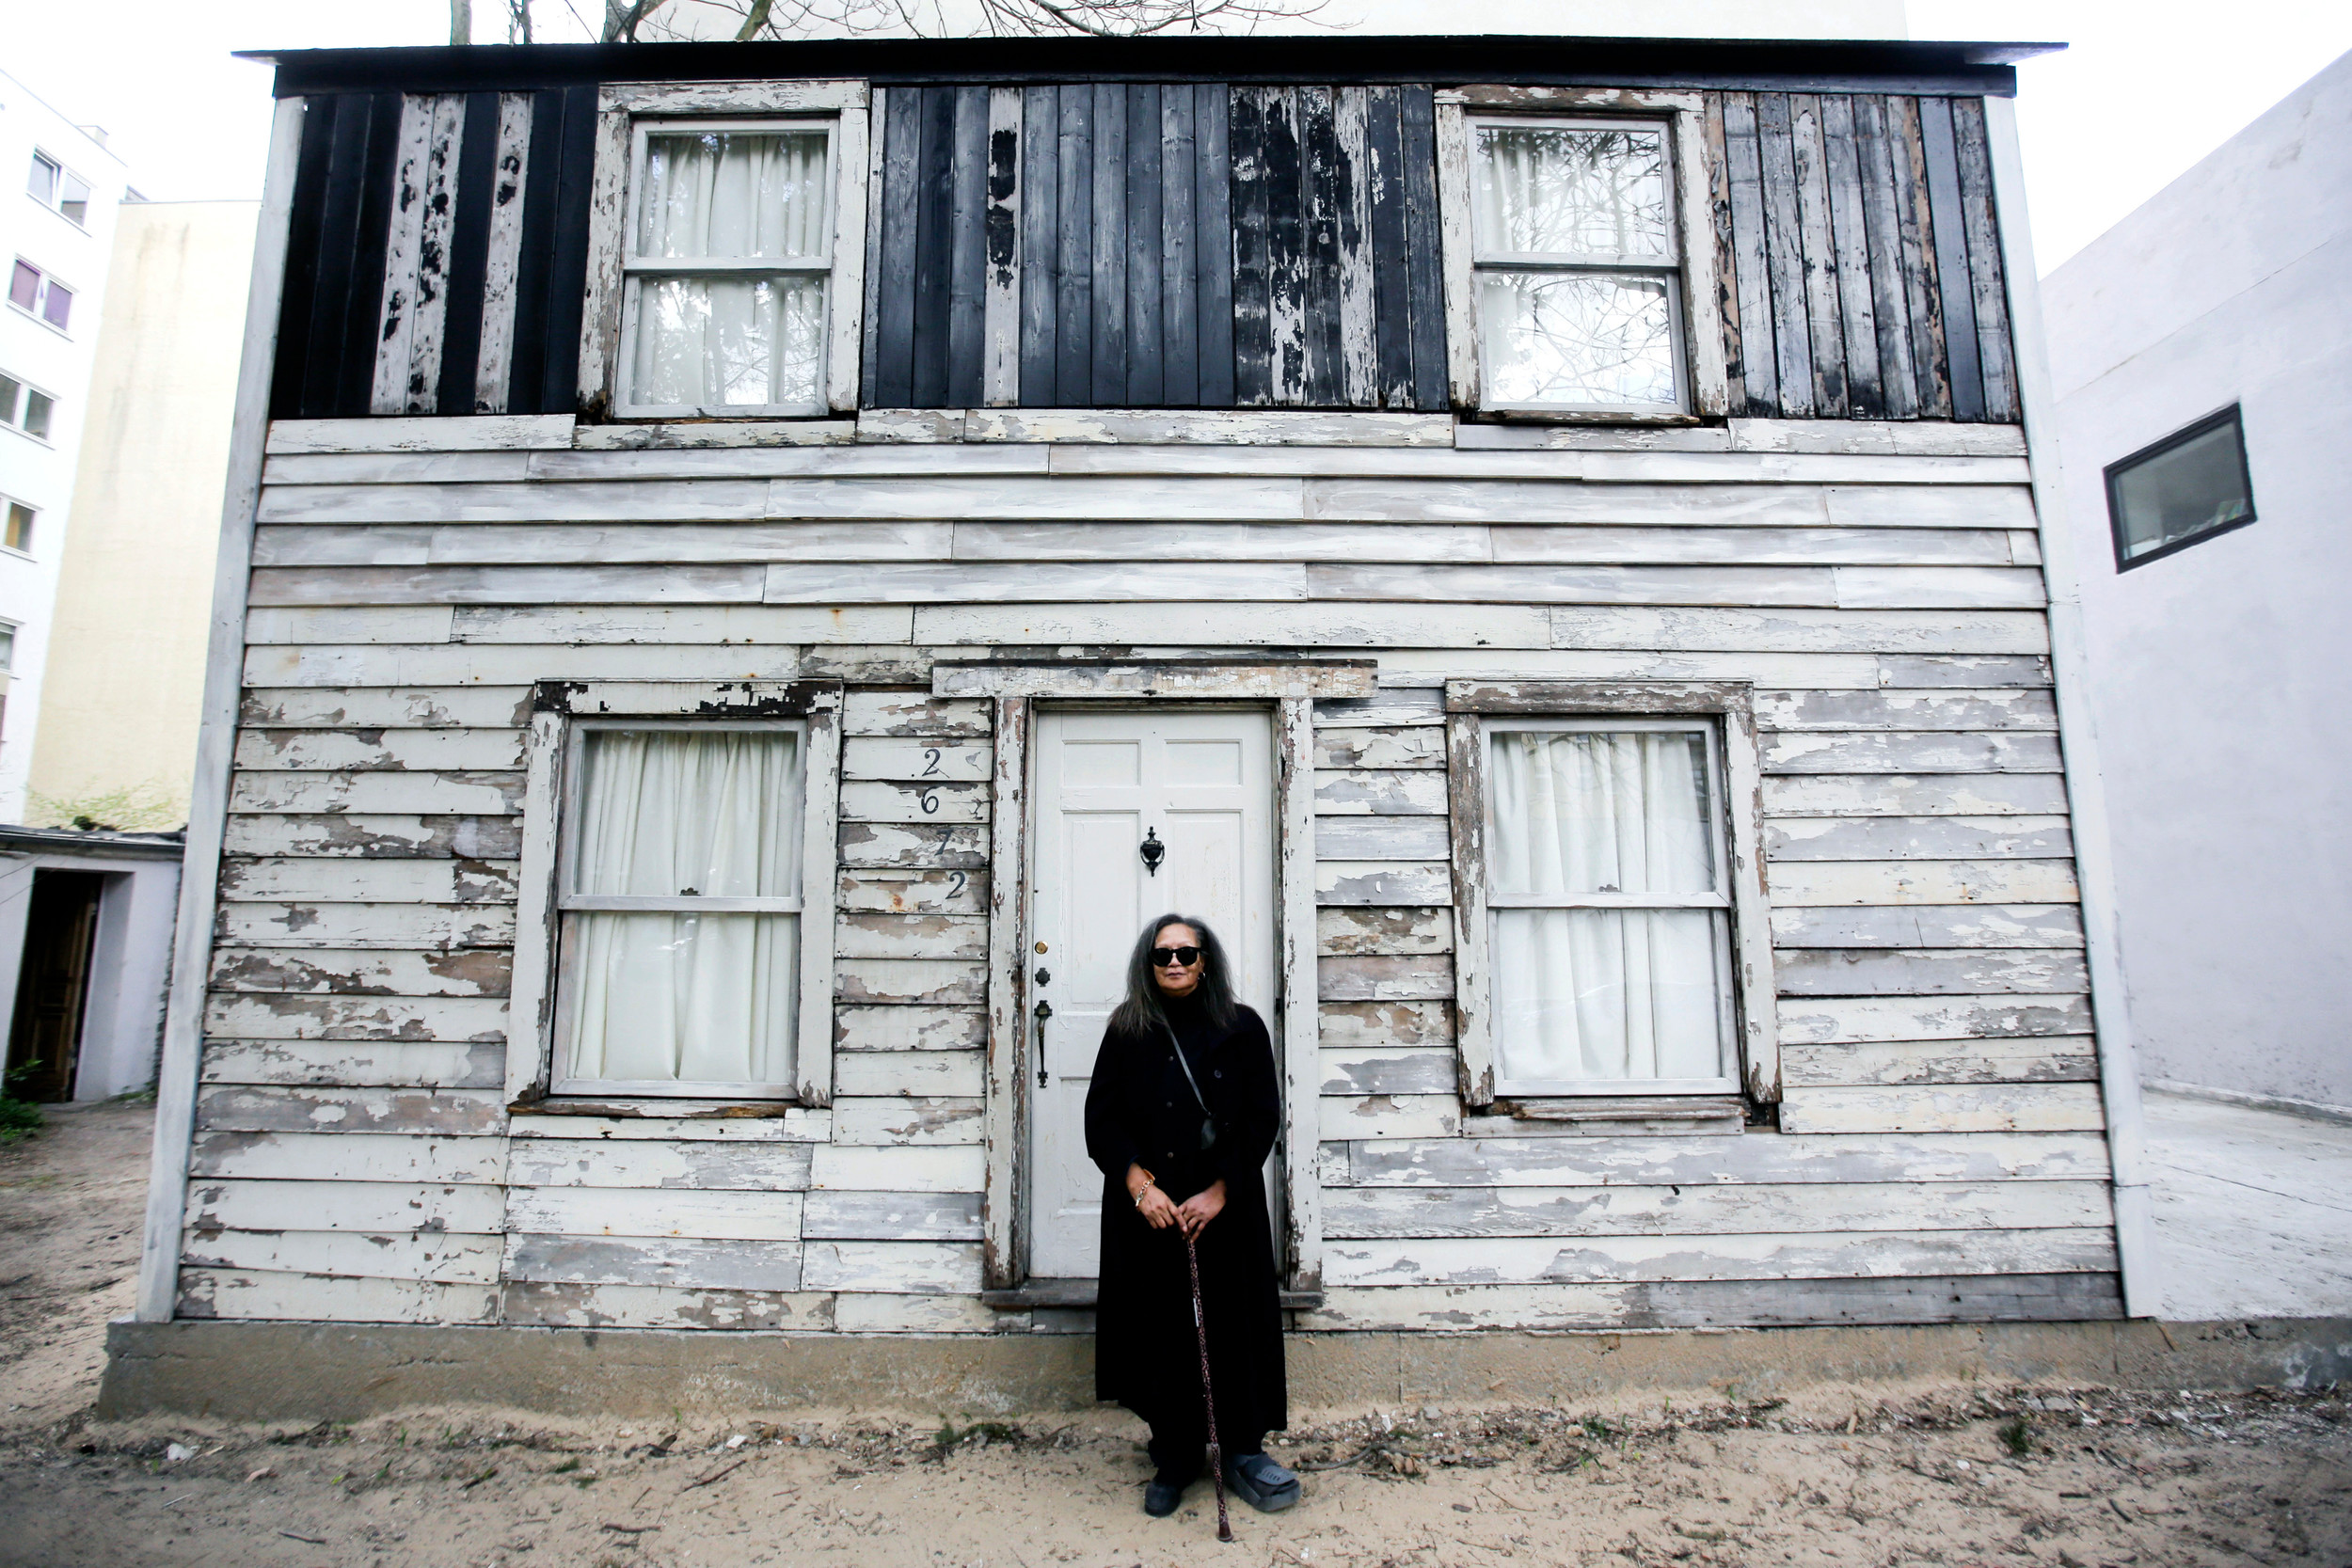 Rhea McCauley, a niece of Rosa Parks, is seen in front of the rebuilt house of the late civil rights activist on April 6 in Berlin. McCauley donated the house, originally located in Detroit, to American artist Ryan Mendoza, who dismantled and and rebuilt it in the German capital. Brown University said in October it is looking to temporarily relocate the house from Berlin to Providence, Rhode Island.